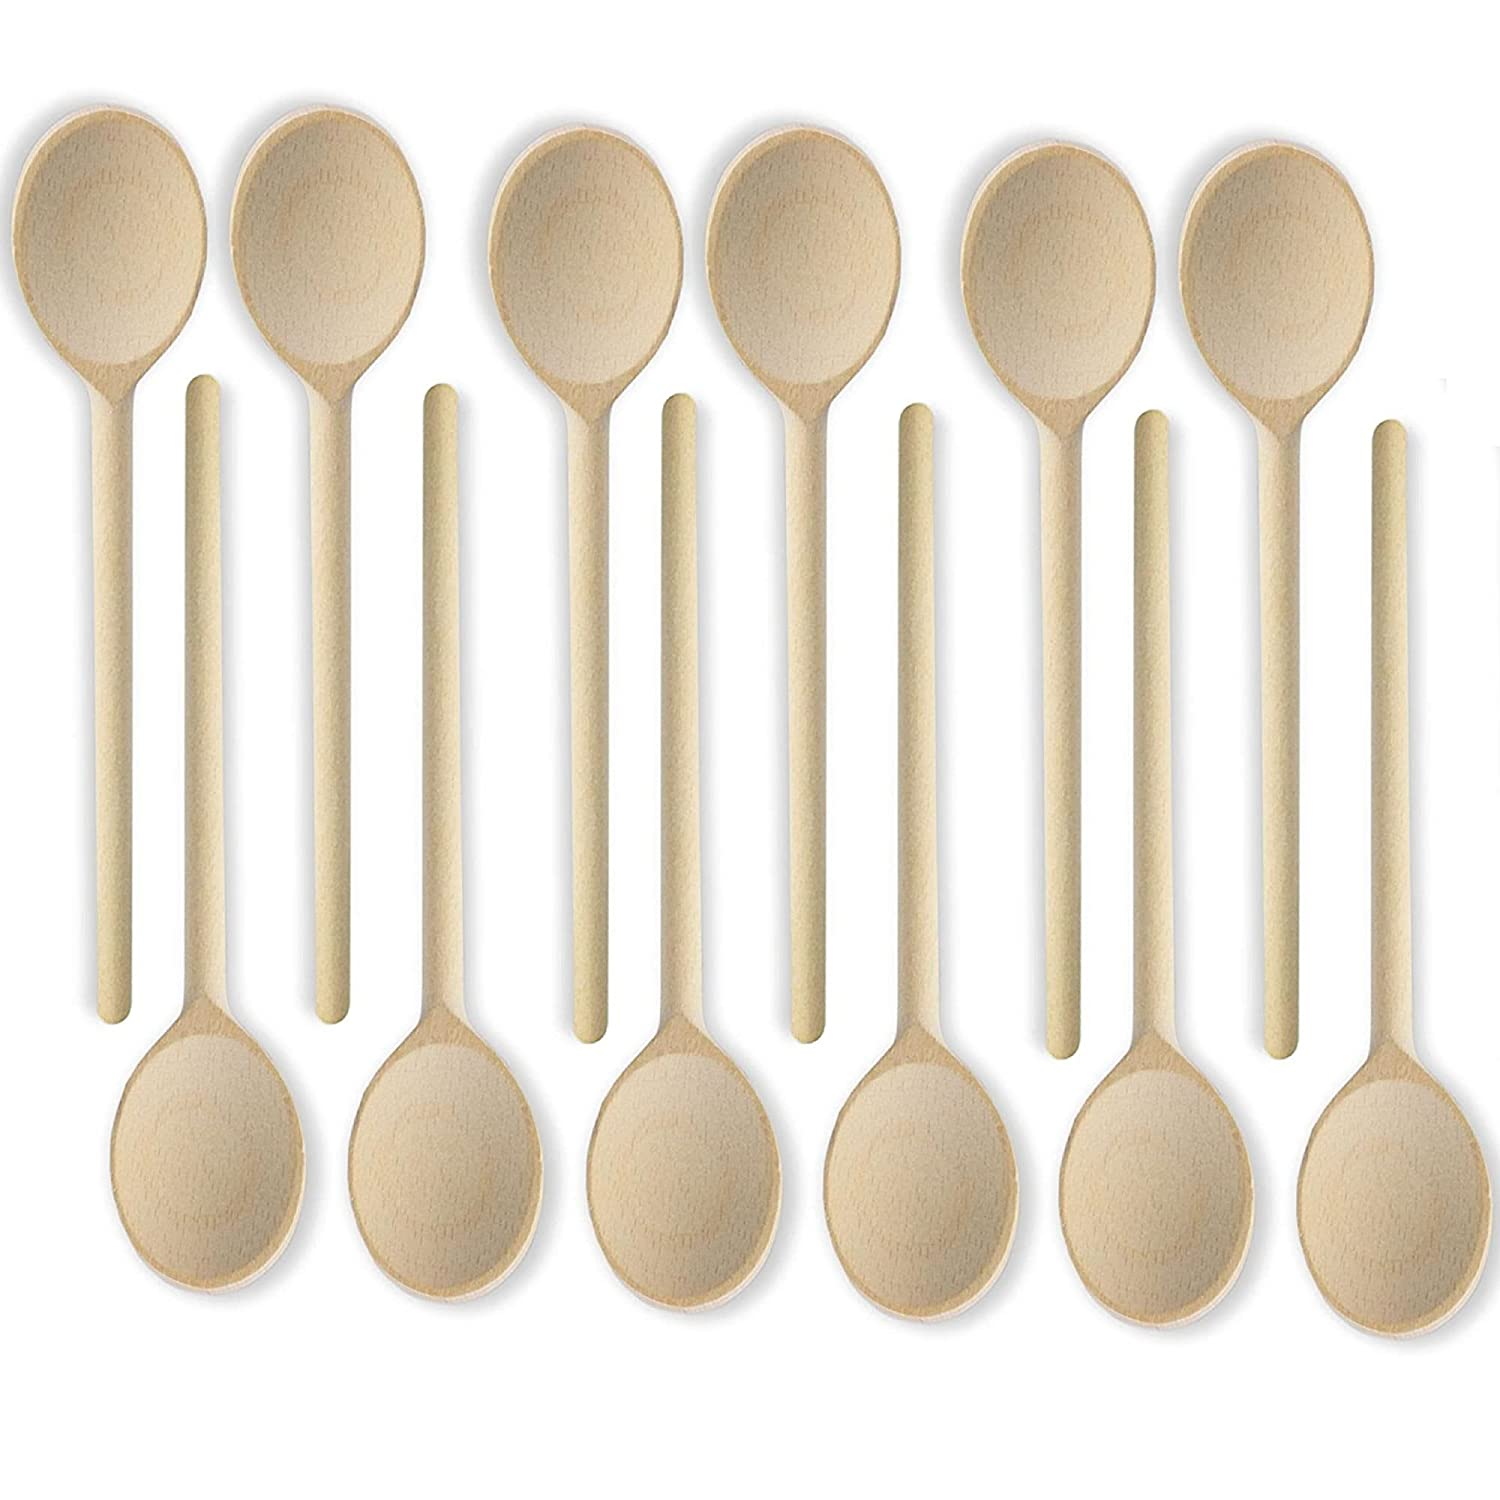 MR. WOODWARE 10- Inch Wooden Kitchen Spoons Baking Mixing Serving Utensils Bulk Spoon Puppets - Set of 12